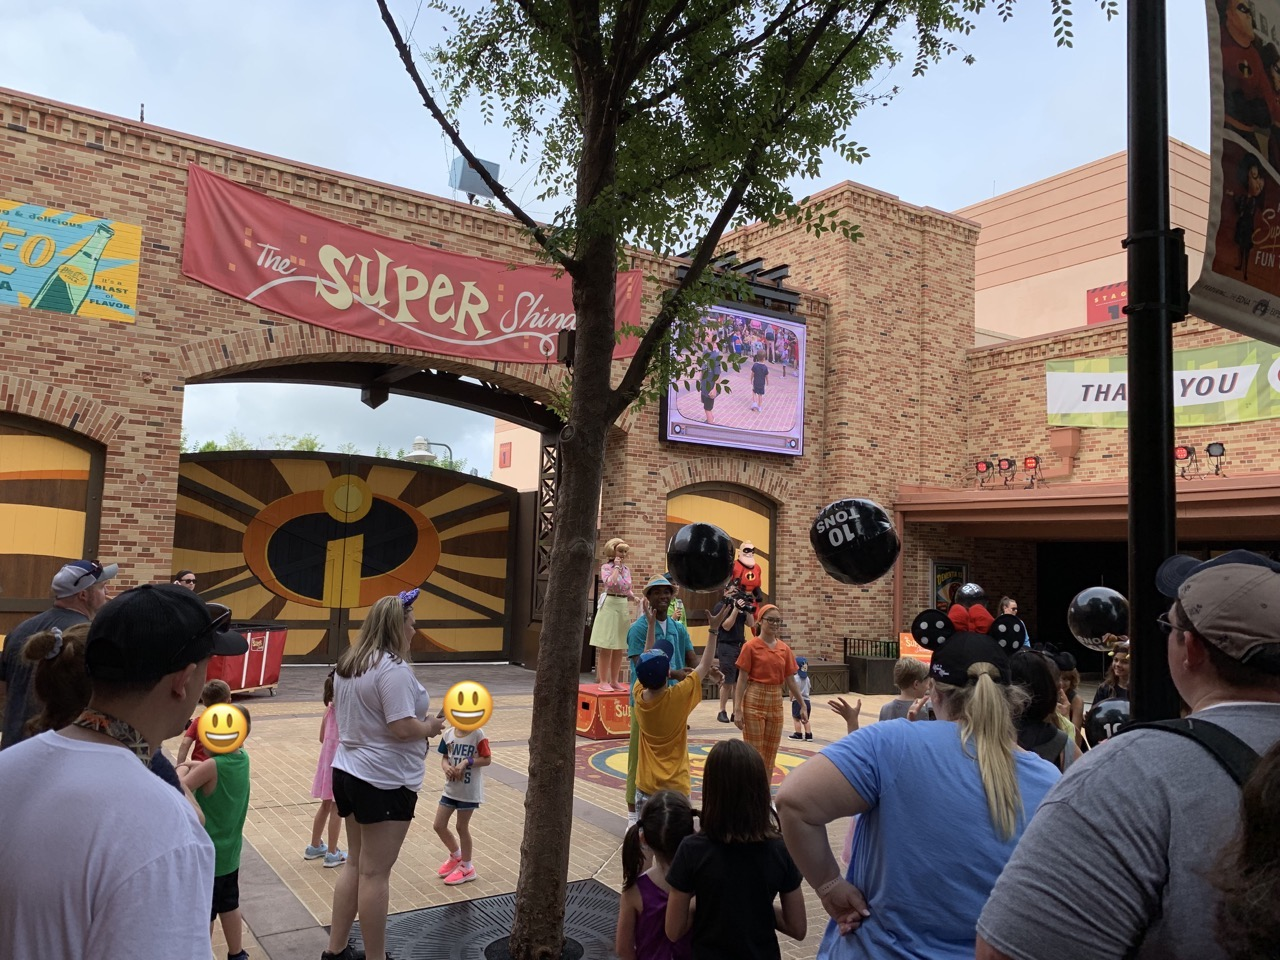 disney world trip report early summer 2019 day two 38 shindig.jpeg